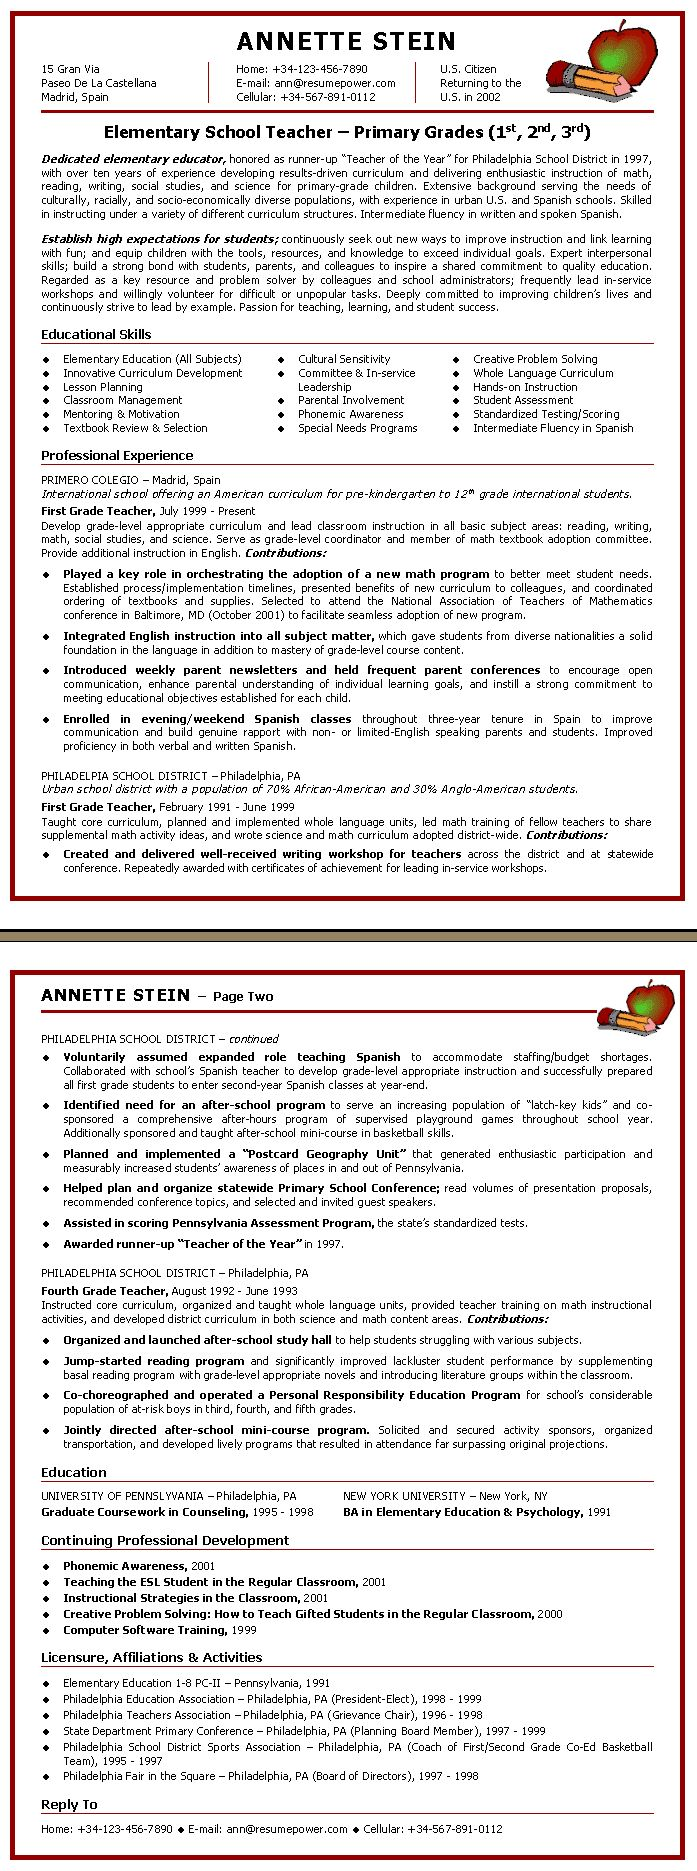 First Year Teacher Resume Examples 10 Best Curriculum Vitae Images On Pinterest  Resume Resume .